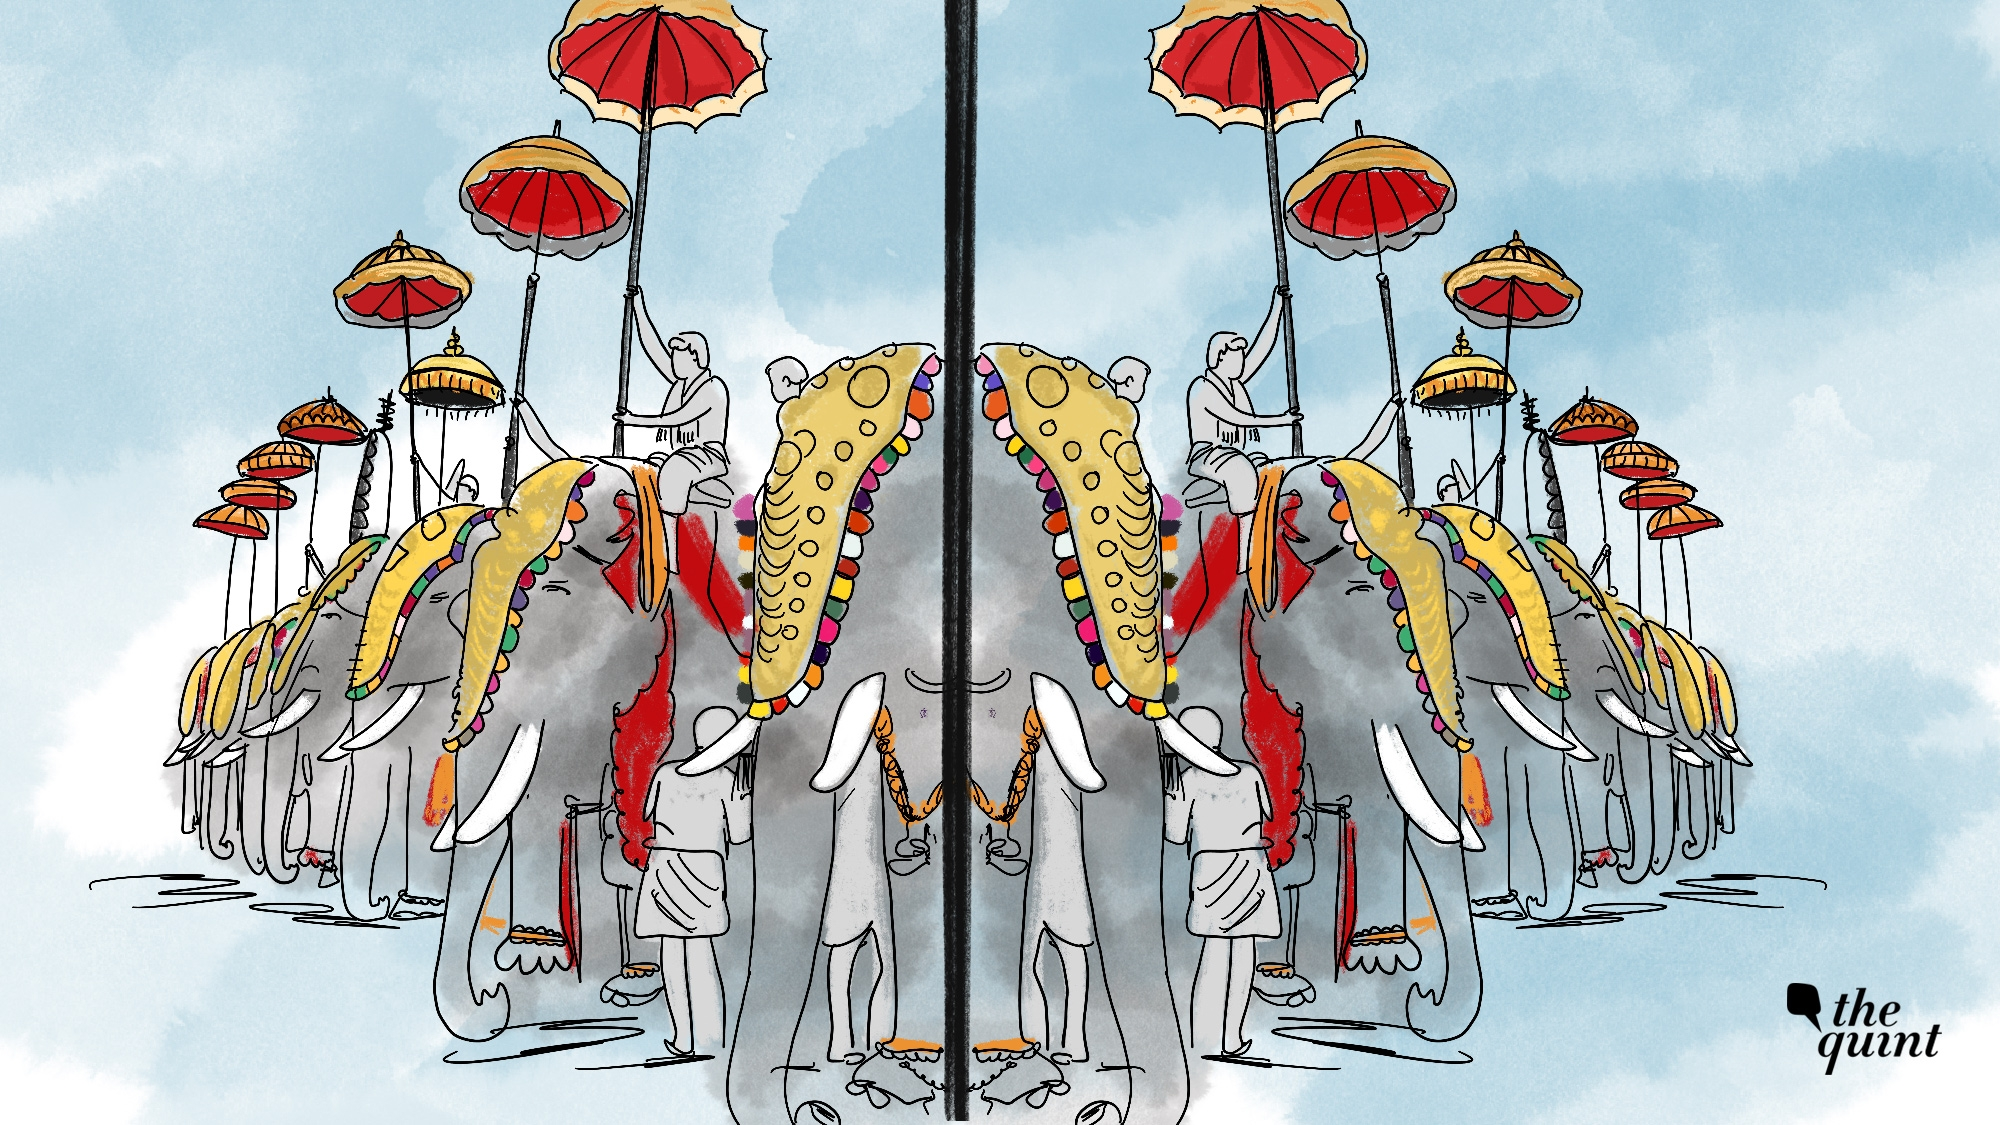 The Malayali Man And His Elephant: A Manufactured Love Story